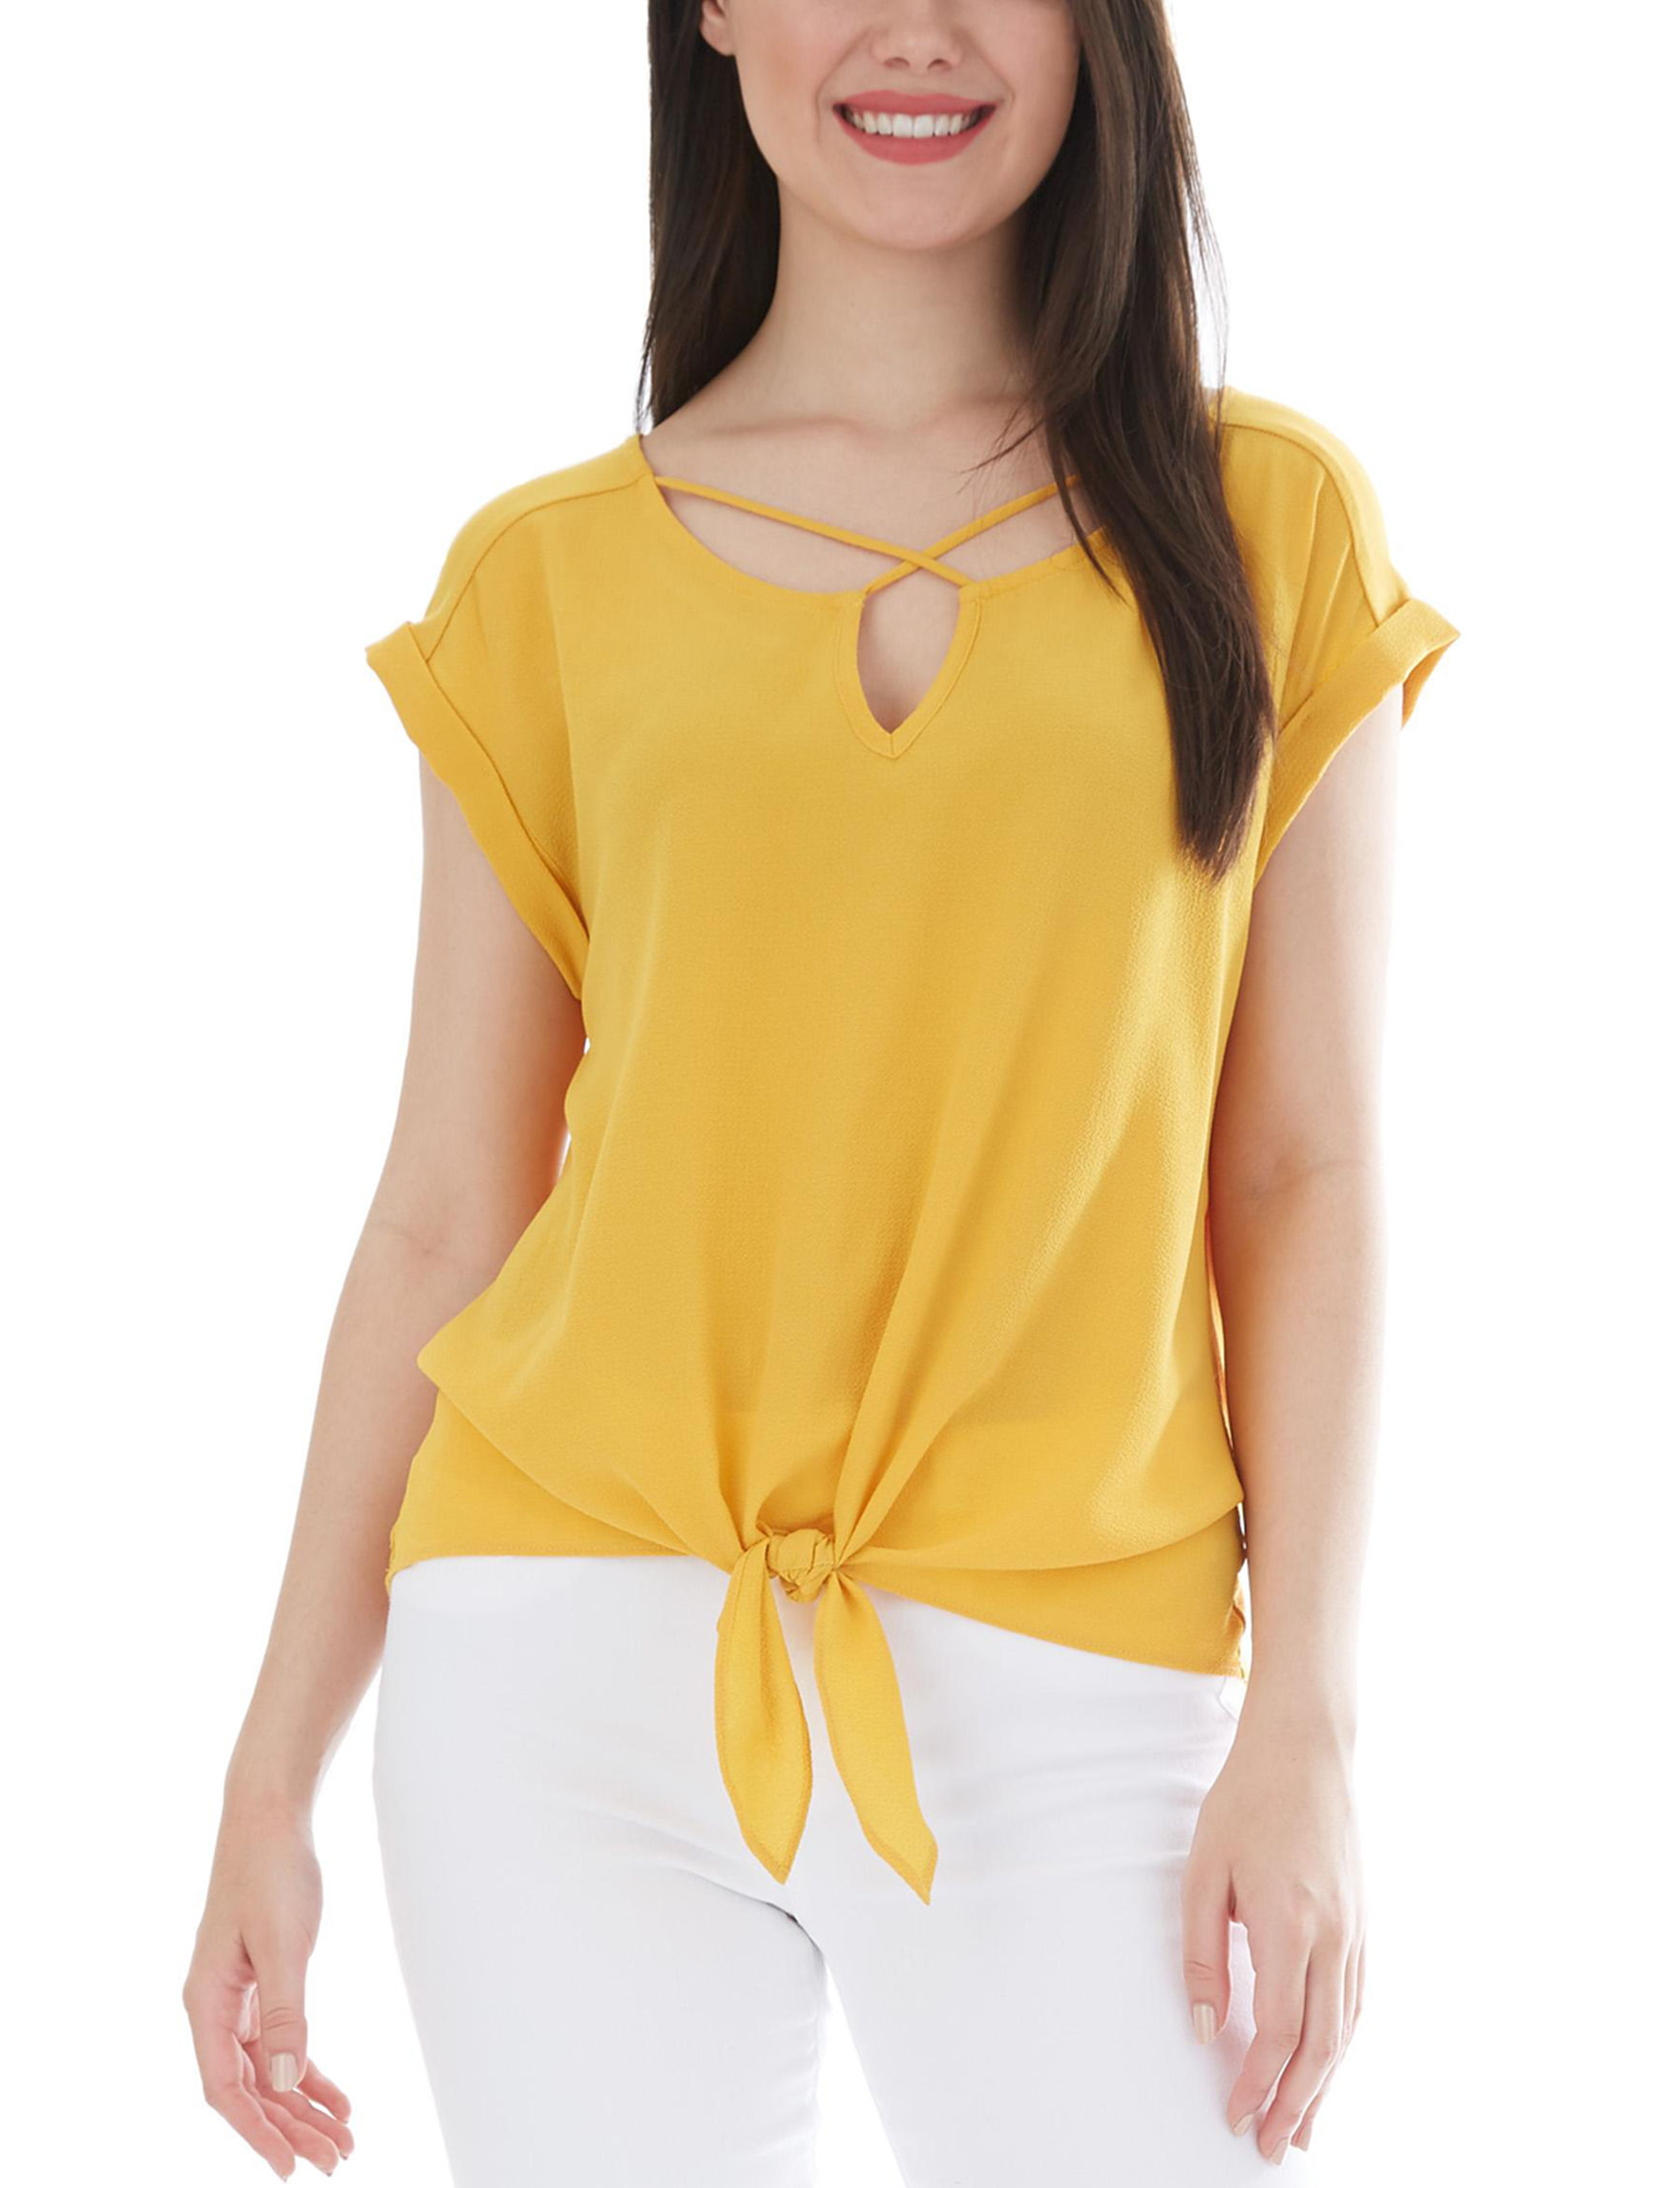 A. Byer Yellow Shirts & Blouses